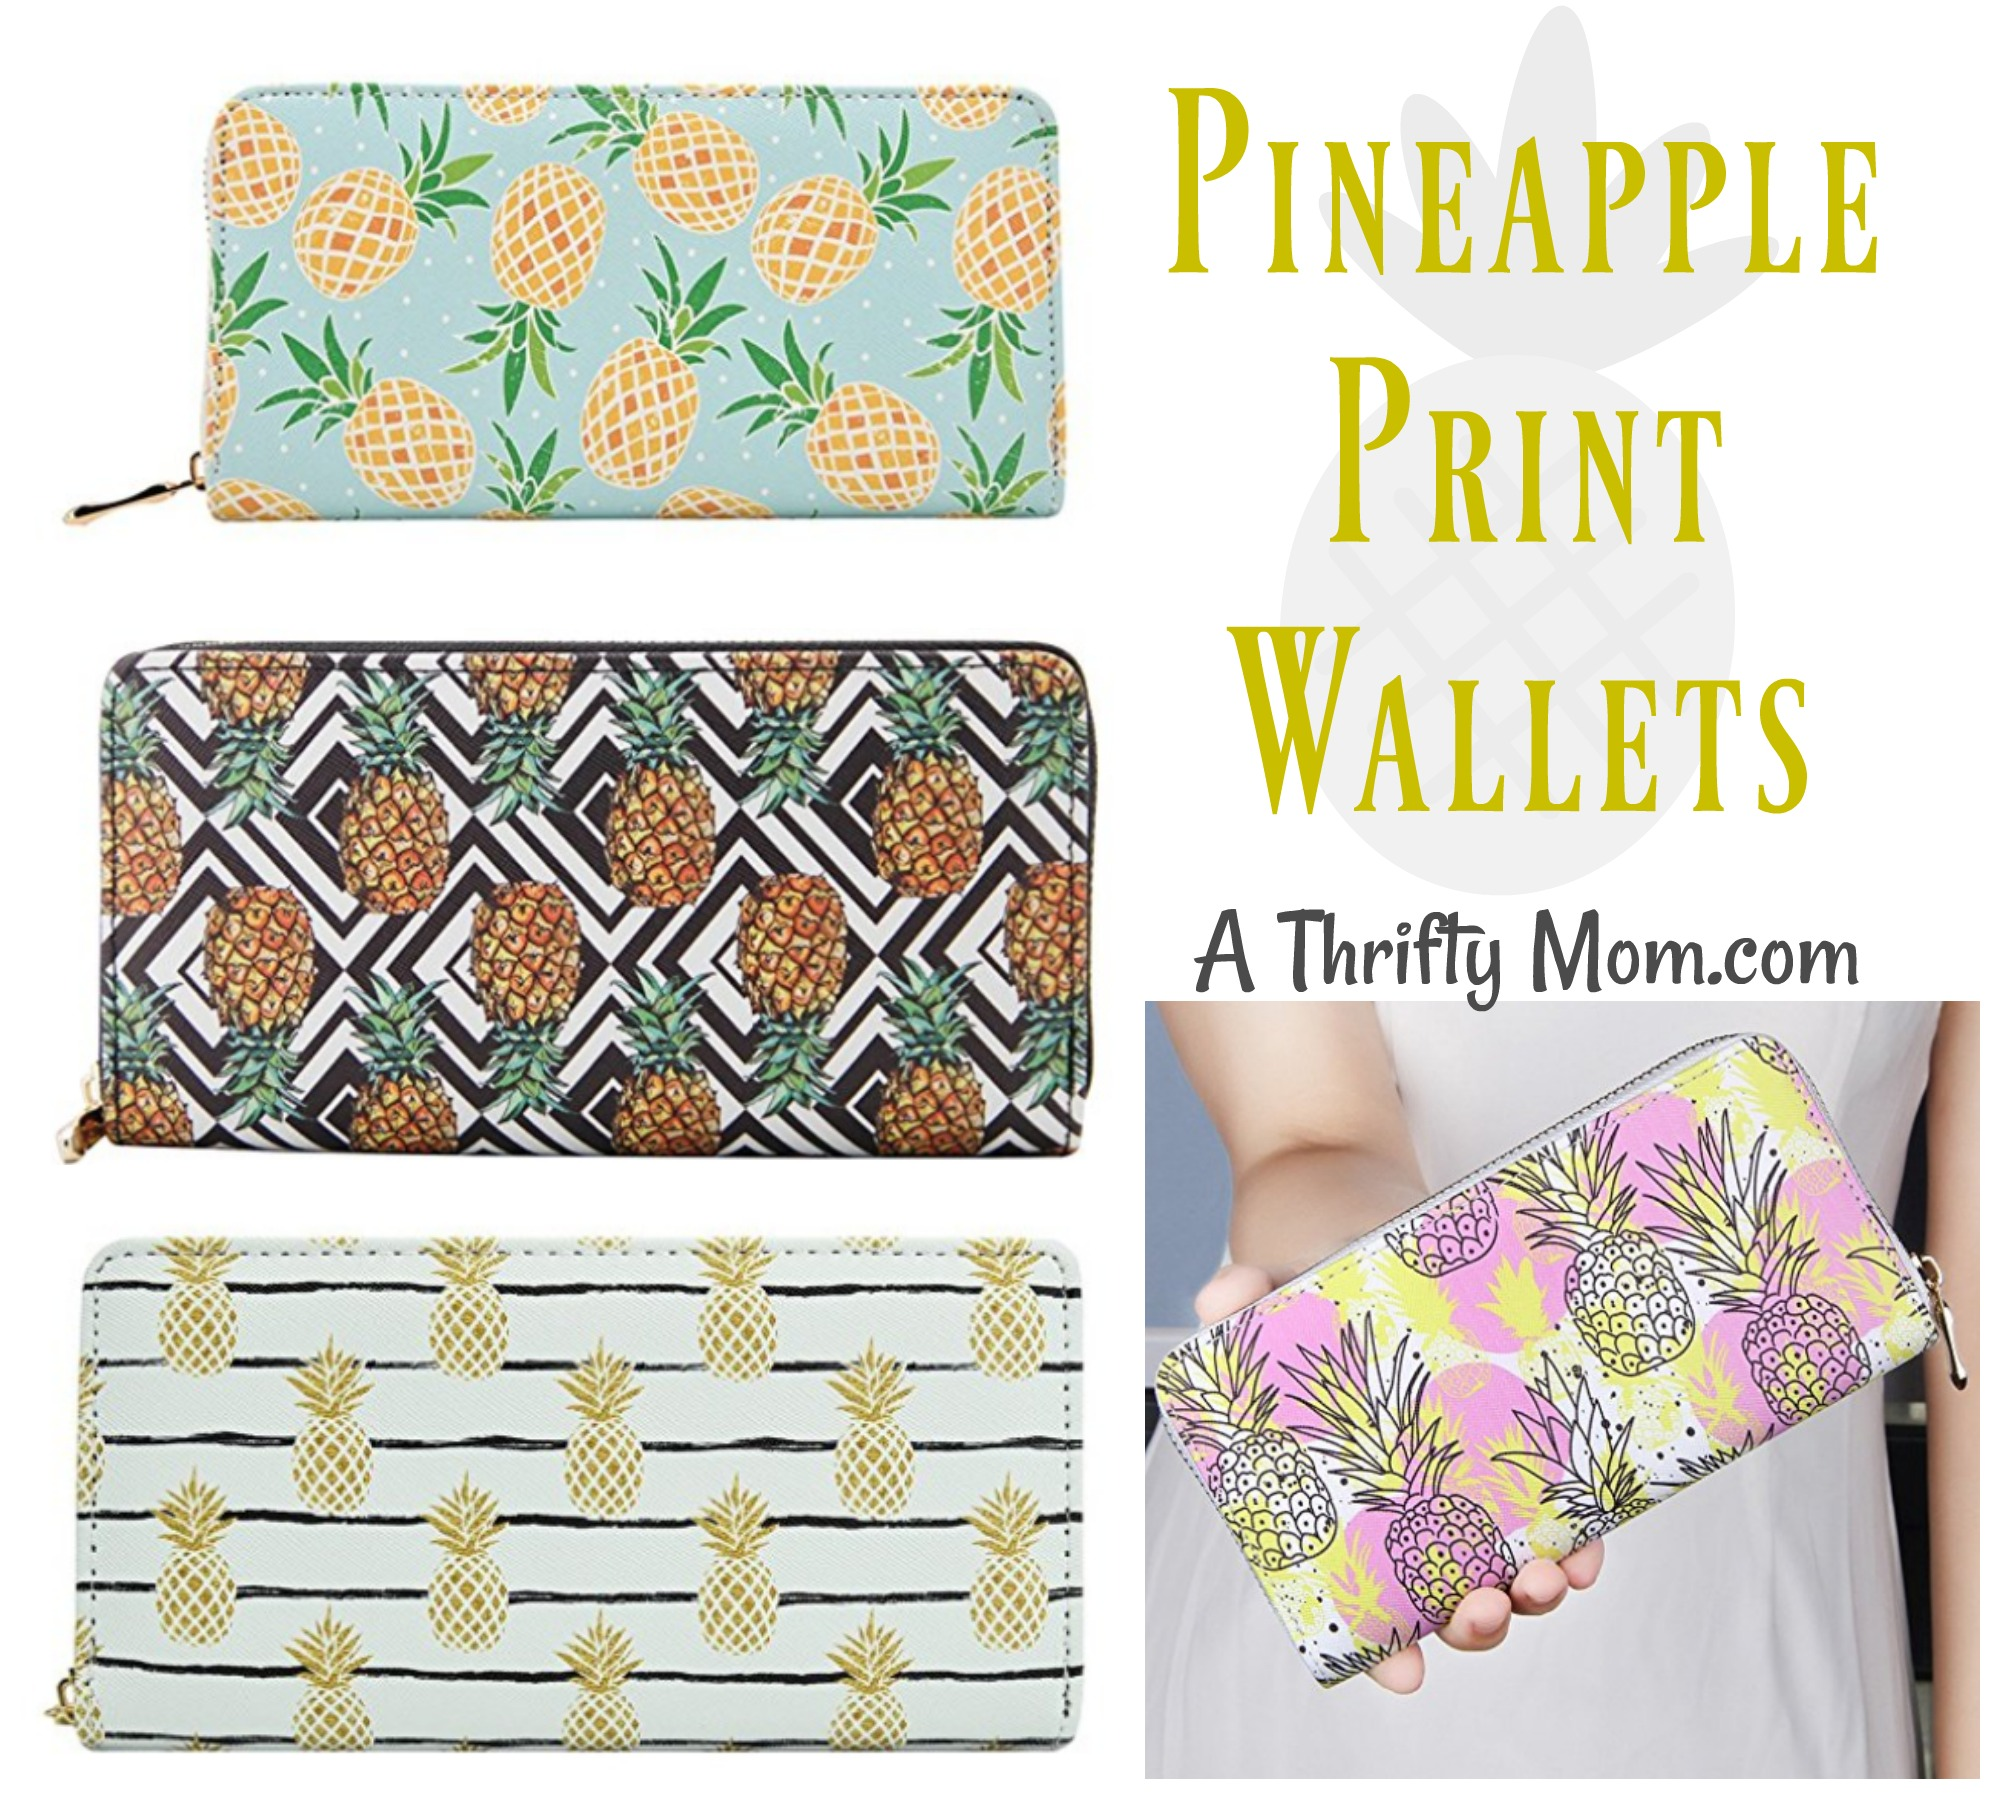 Leather Pineapple Print Wallets